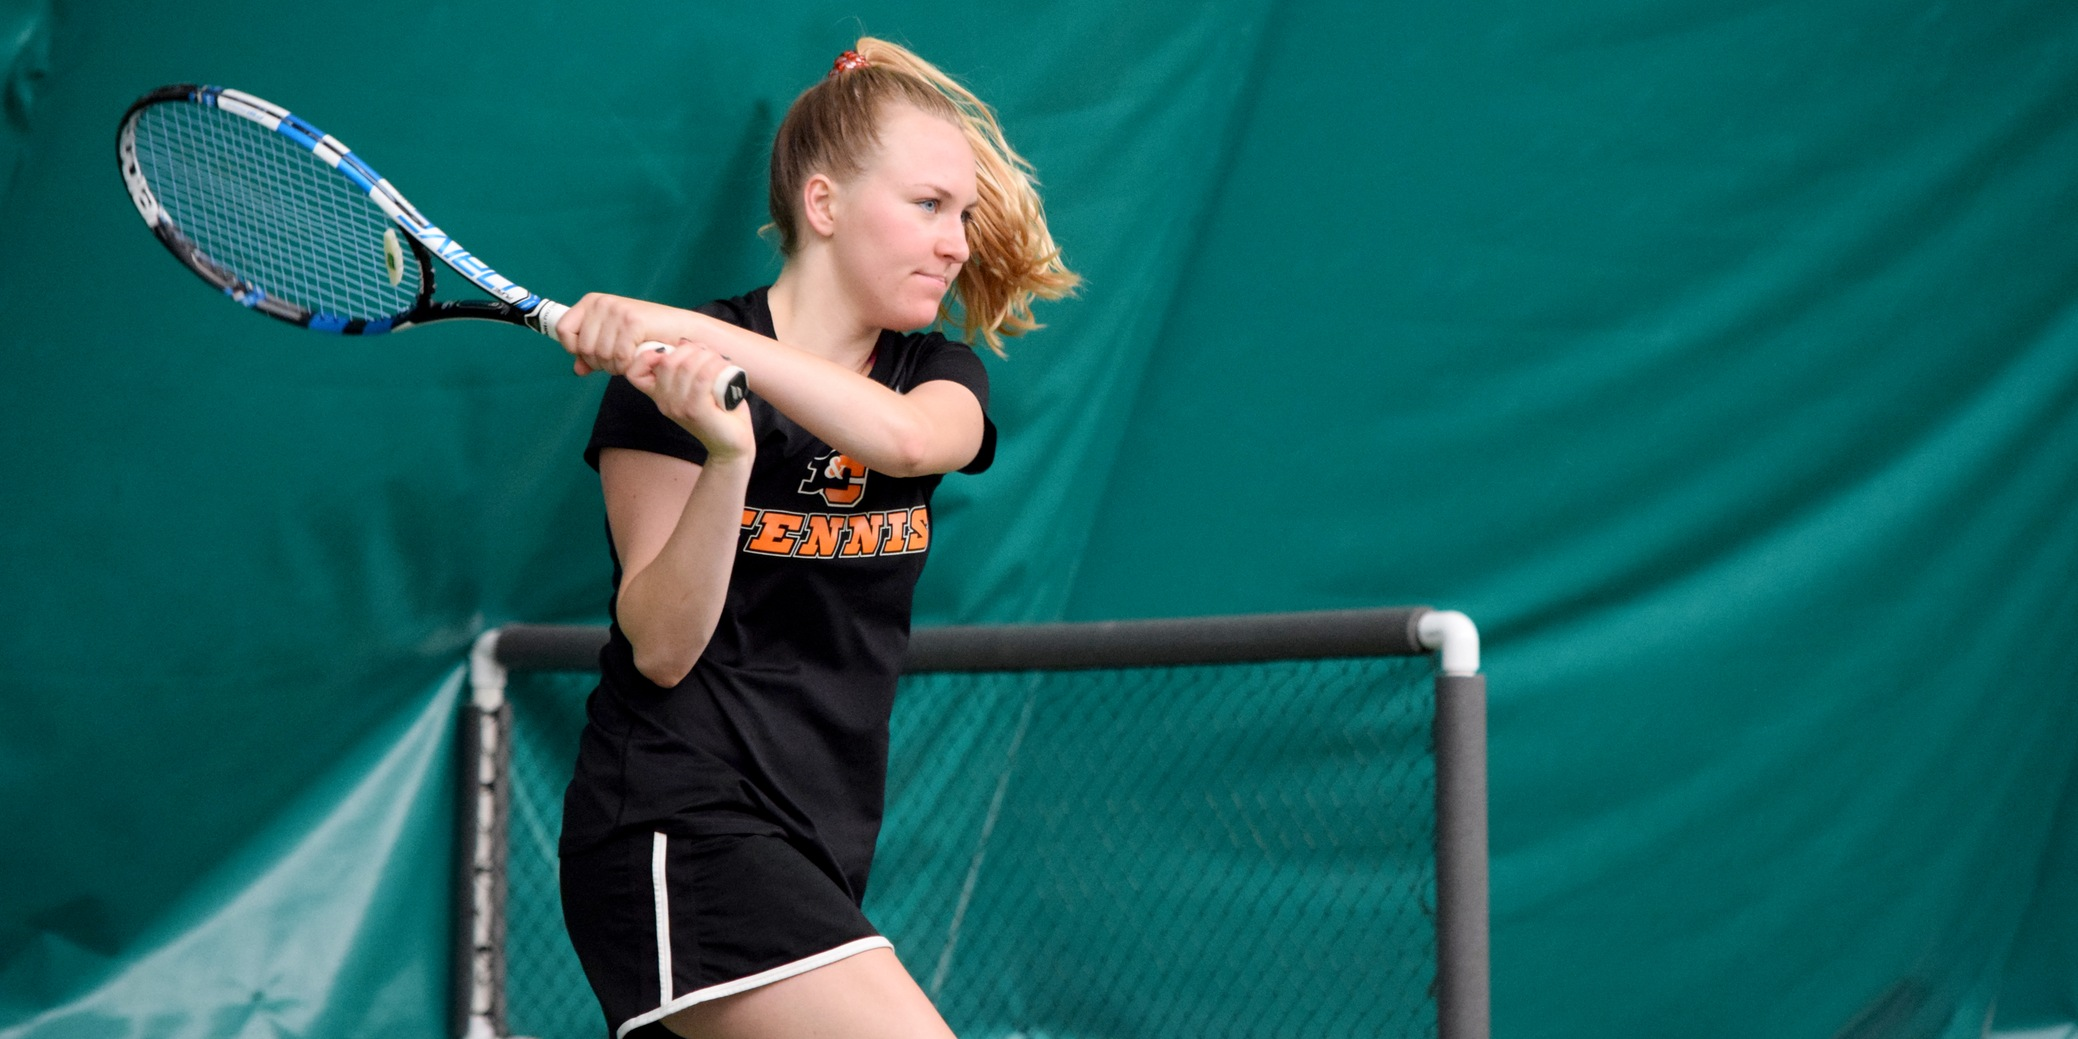 Plawska selected for NCAA Div. III Women's Tennis Championships